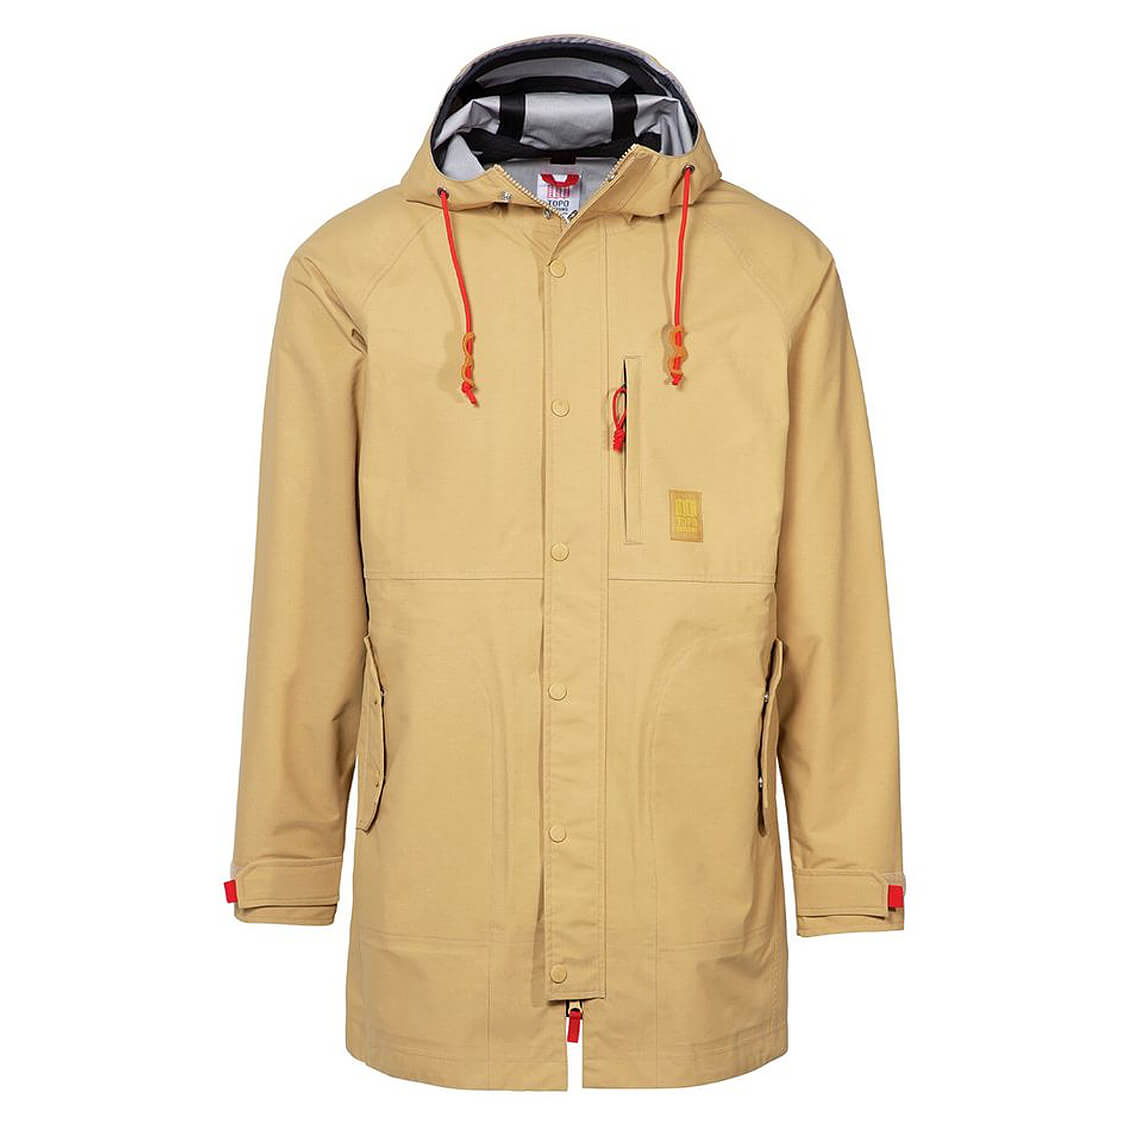 Topo Designs Tech 3L Trench Coat